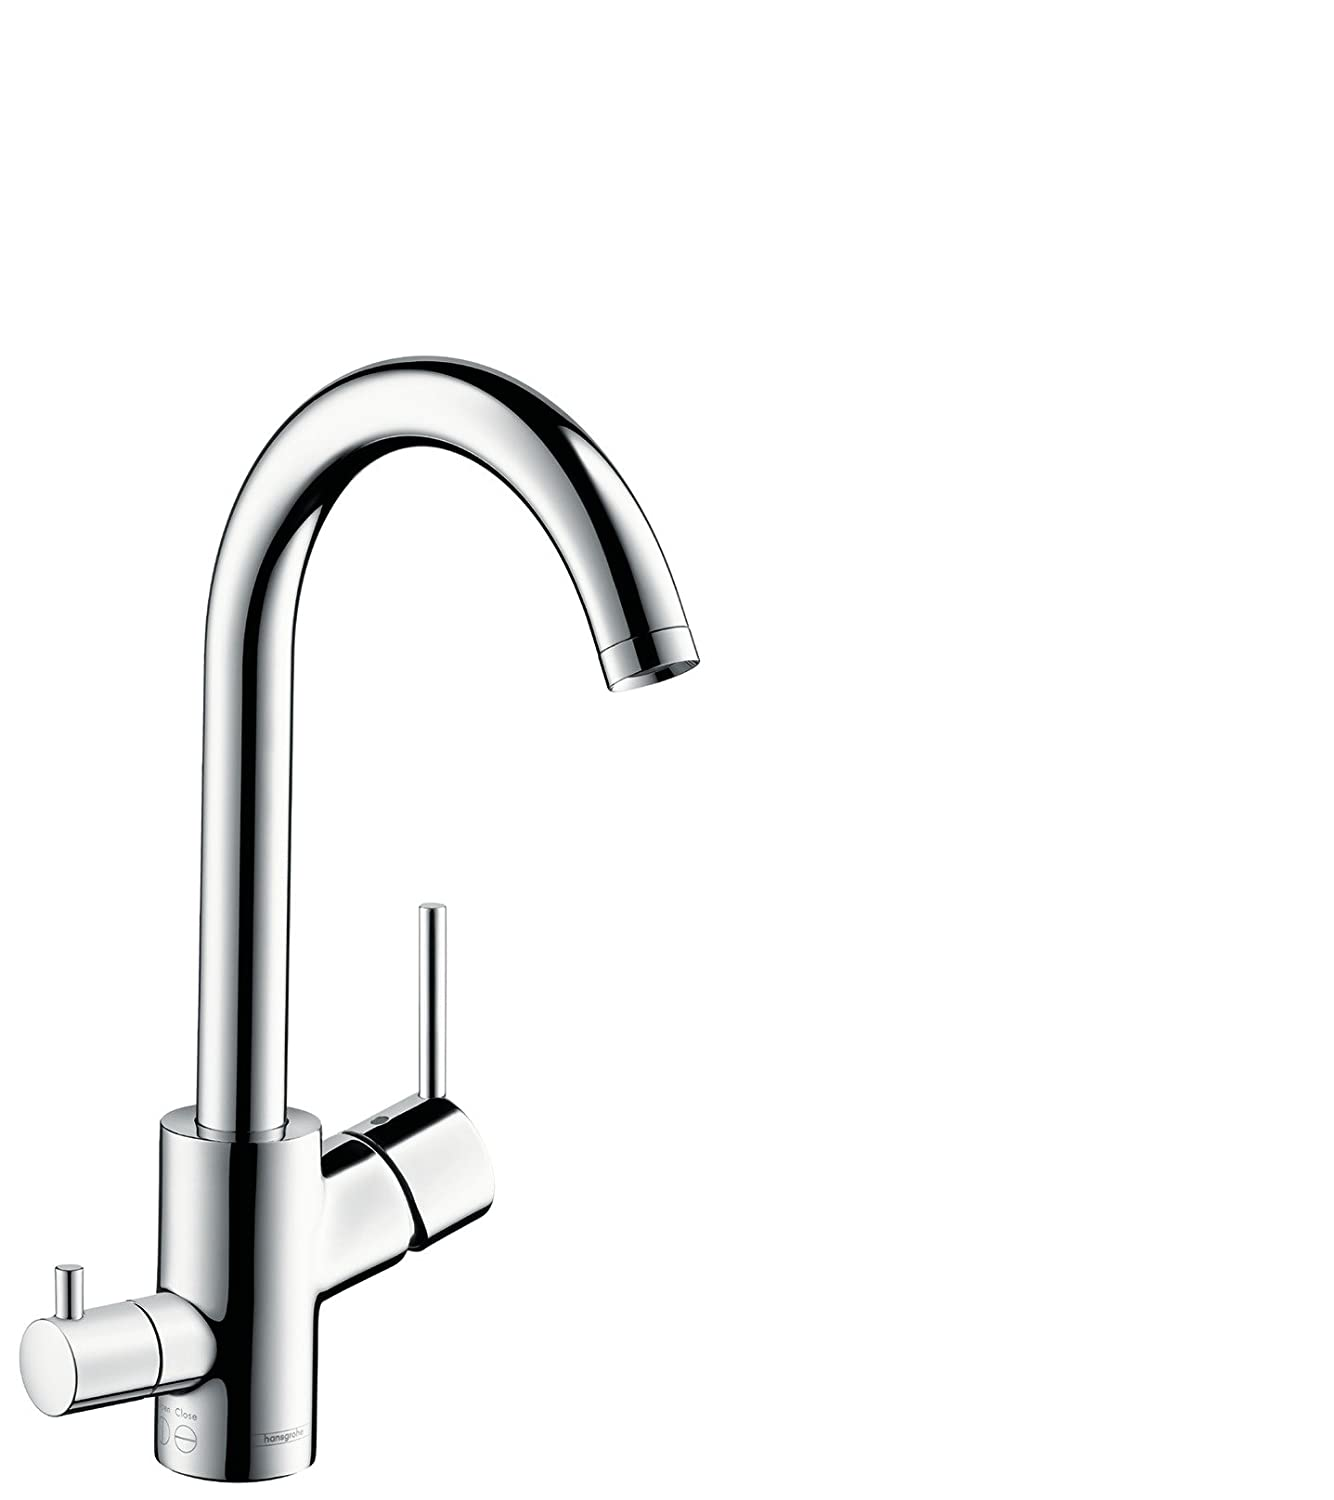 Mixers focus single lever kitchen mixer 260 item no 31820000 - Hansgrohe Talis S Kitchen Tap With Swivel Spout Chrome 14870000 Amazon Co Uk Diy Tools